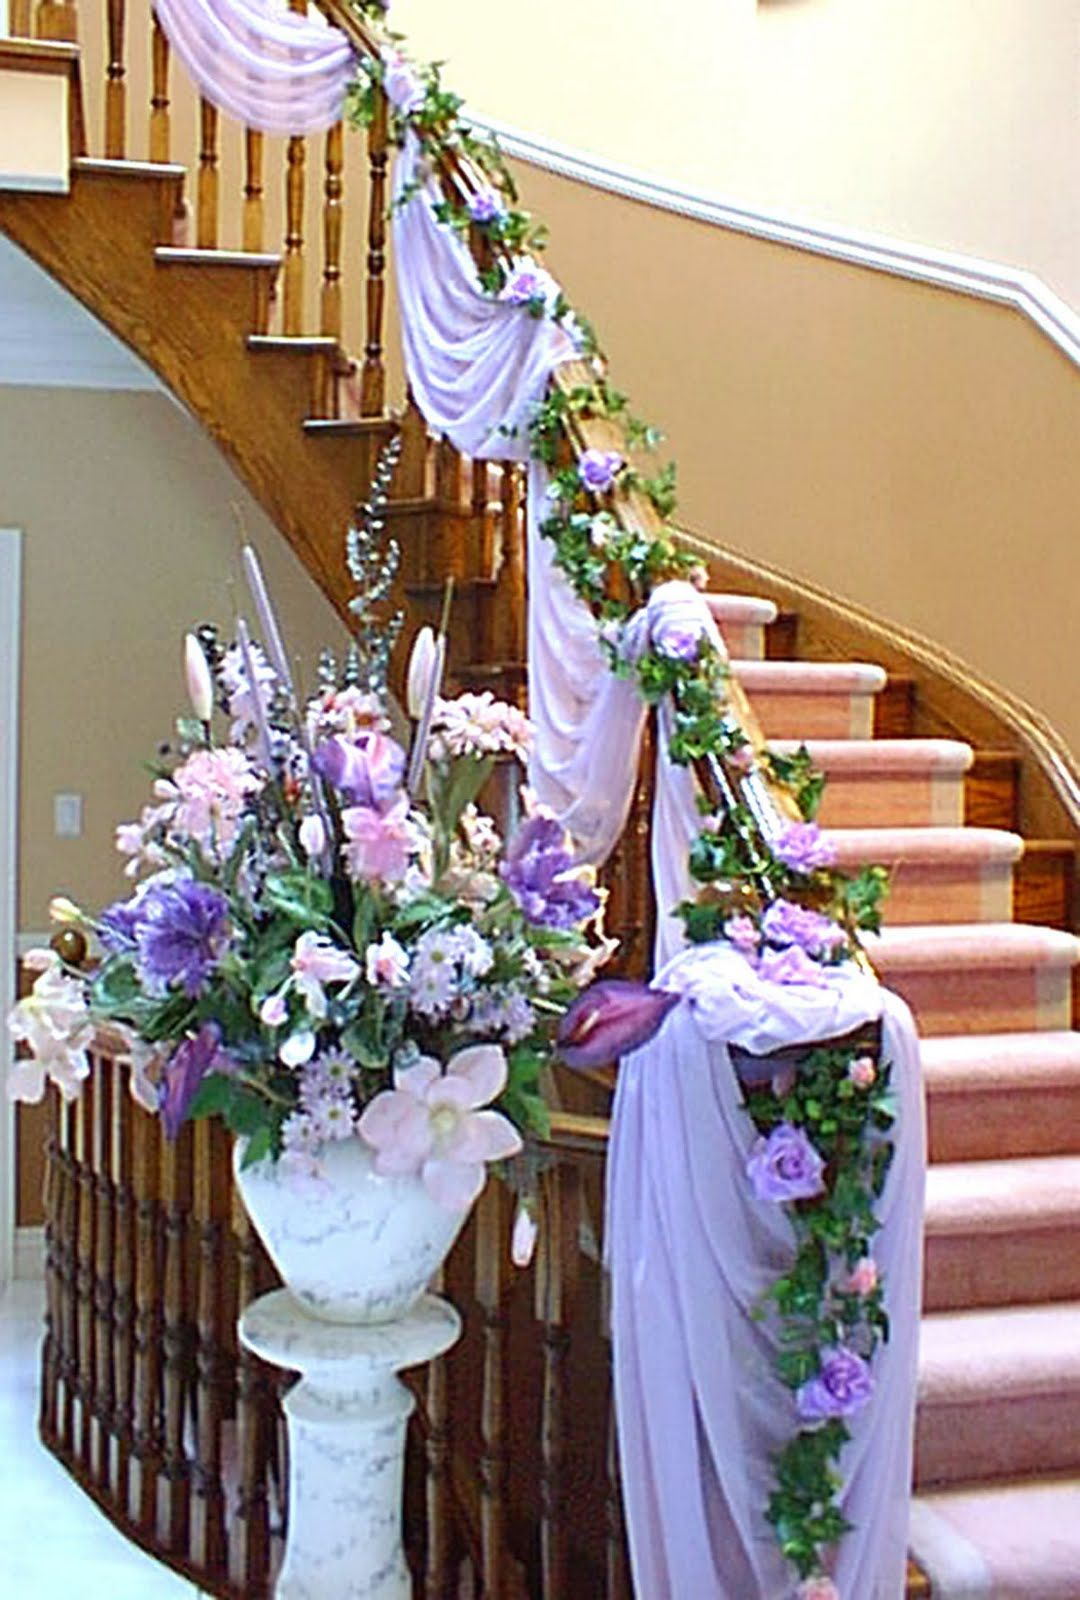 Home Wedding Decoration Ideas home wedding decoration ideas simple home wedding decoration ideas on decorations with simple best creative Wedding Bliss A Few Of Our Featured Options For Your Dream Wedding Day Bouquets By Bridal Shower Decorationshouse